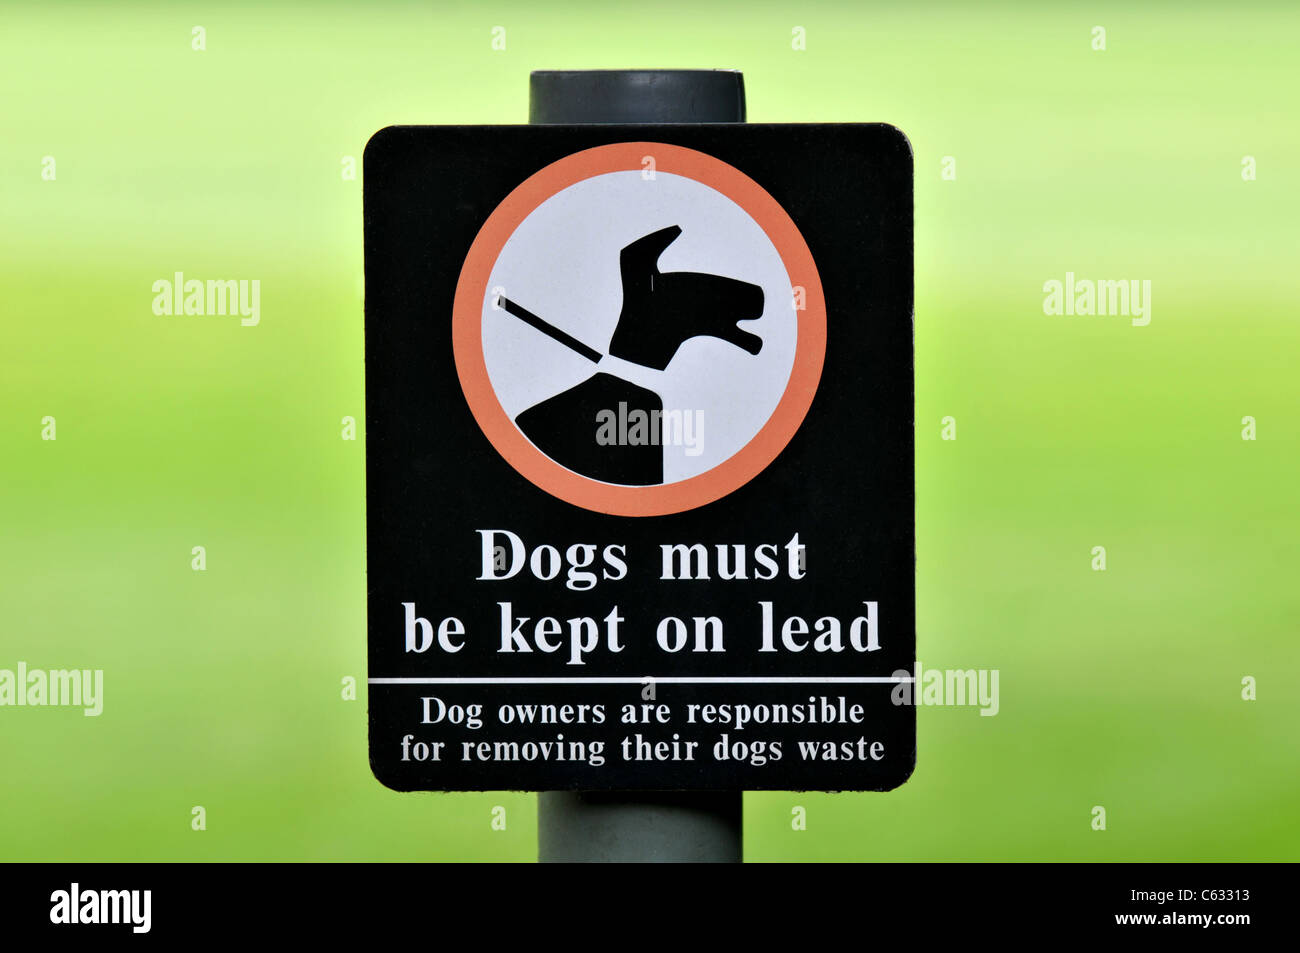 Dogs must be kept on lead sign - Stock Image